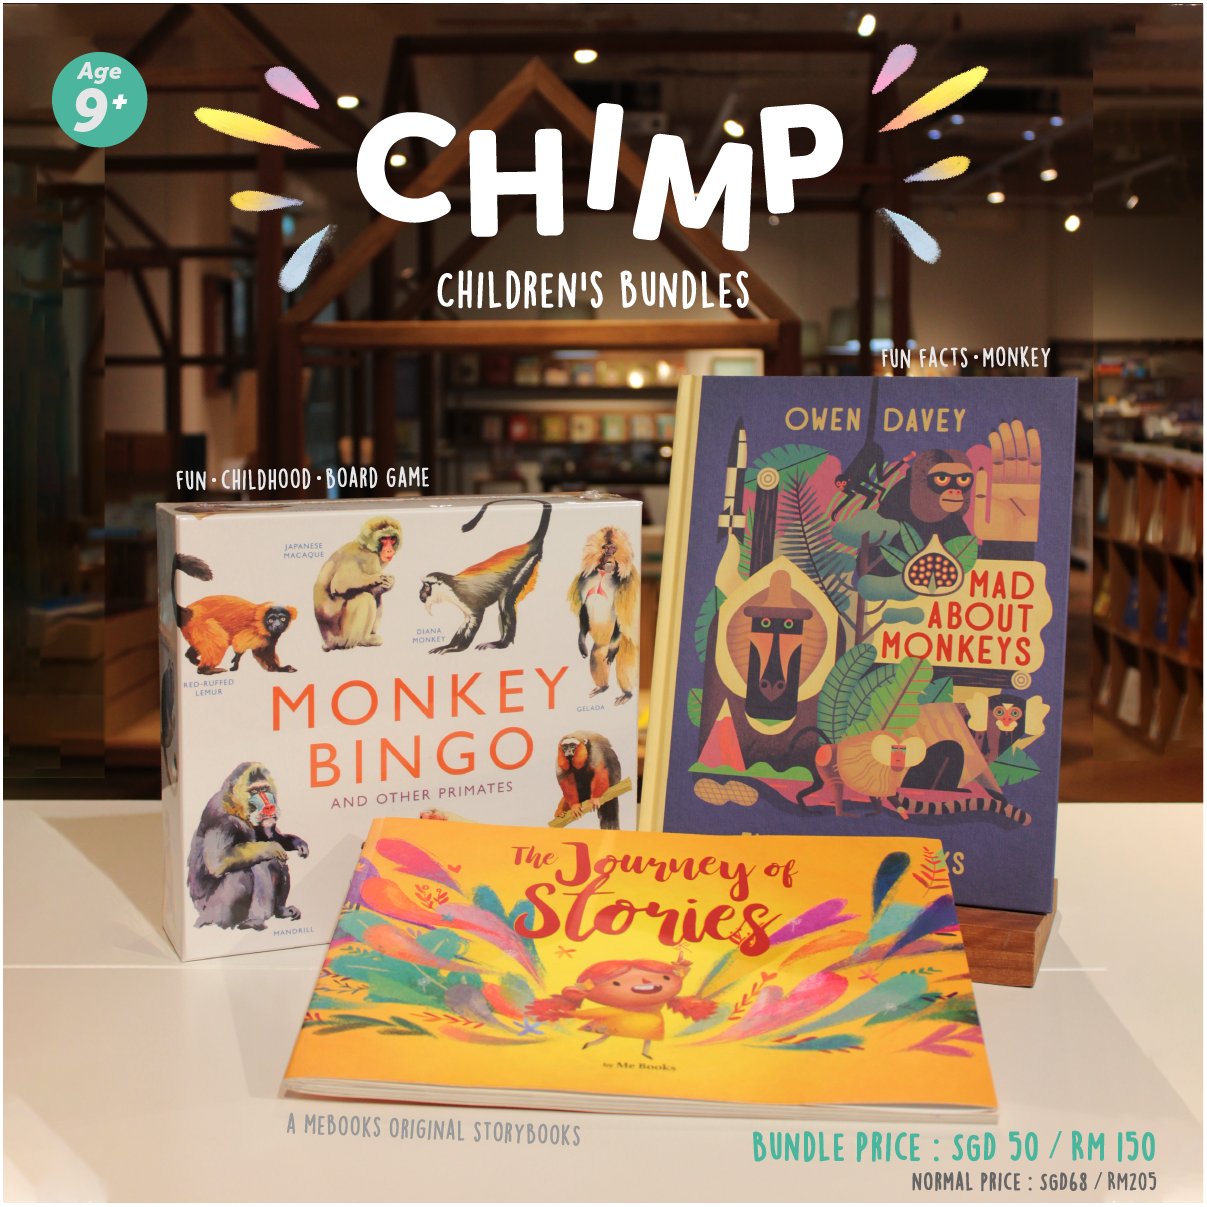 Chimp Children's Bundle